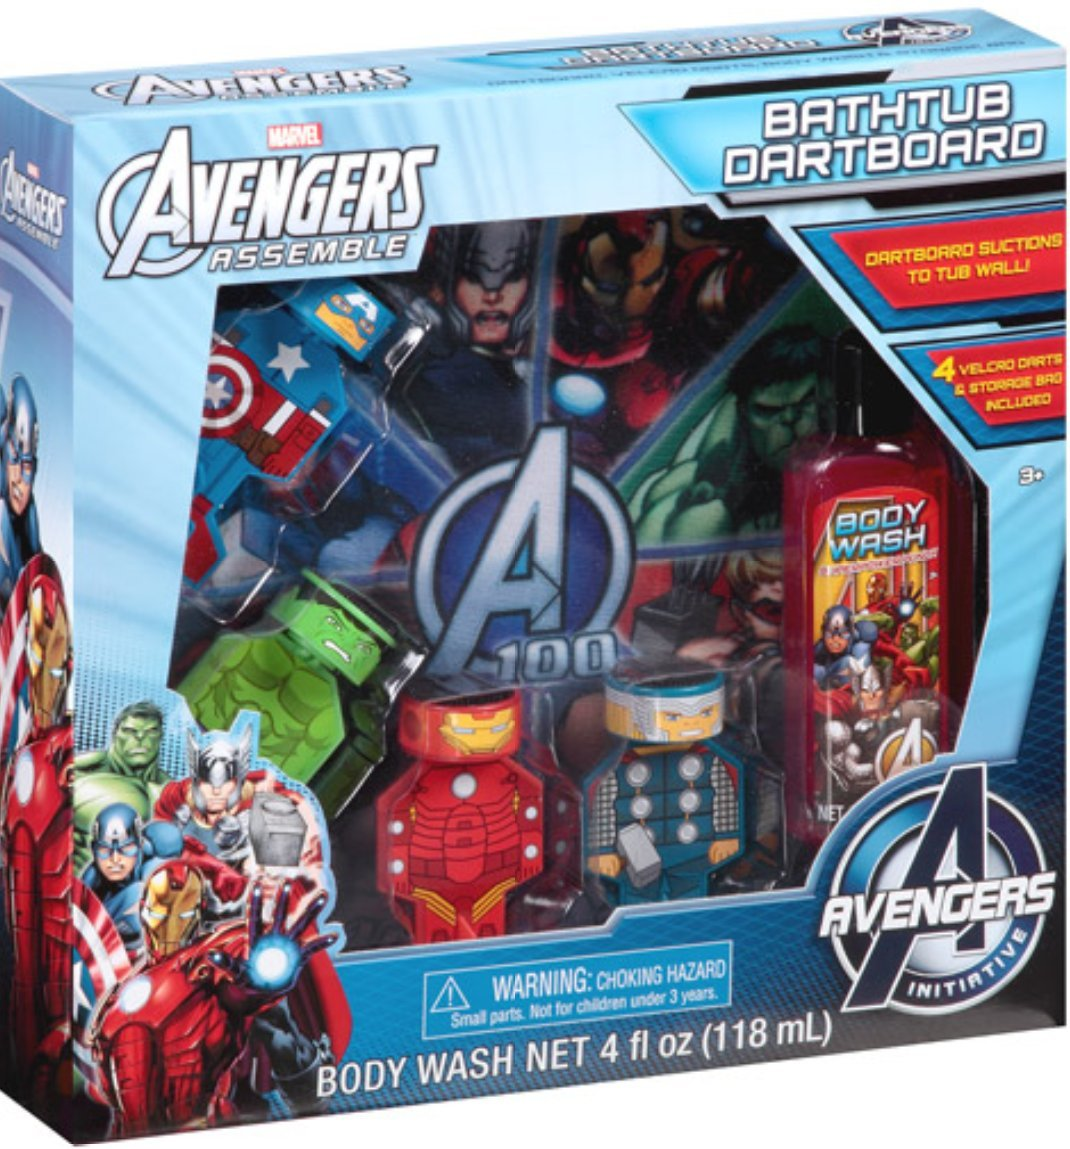 Marvel Avengers 7pc Bath Set $5.00 With Free Ship To Store From Walmart!